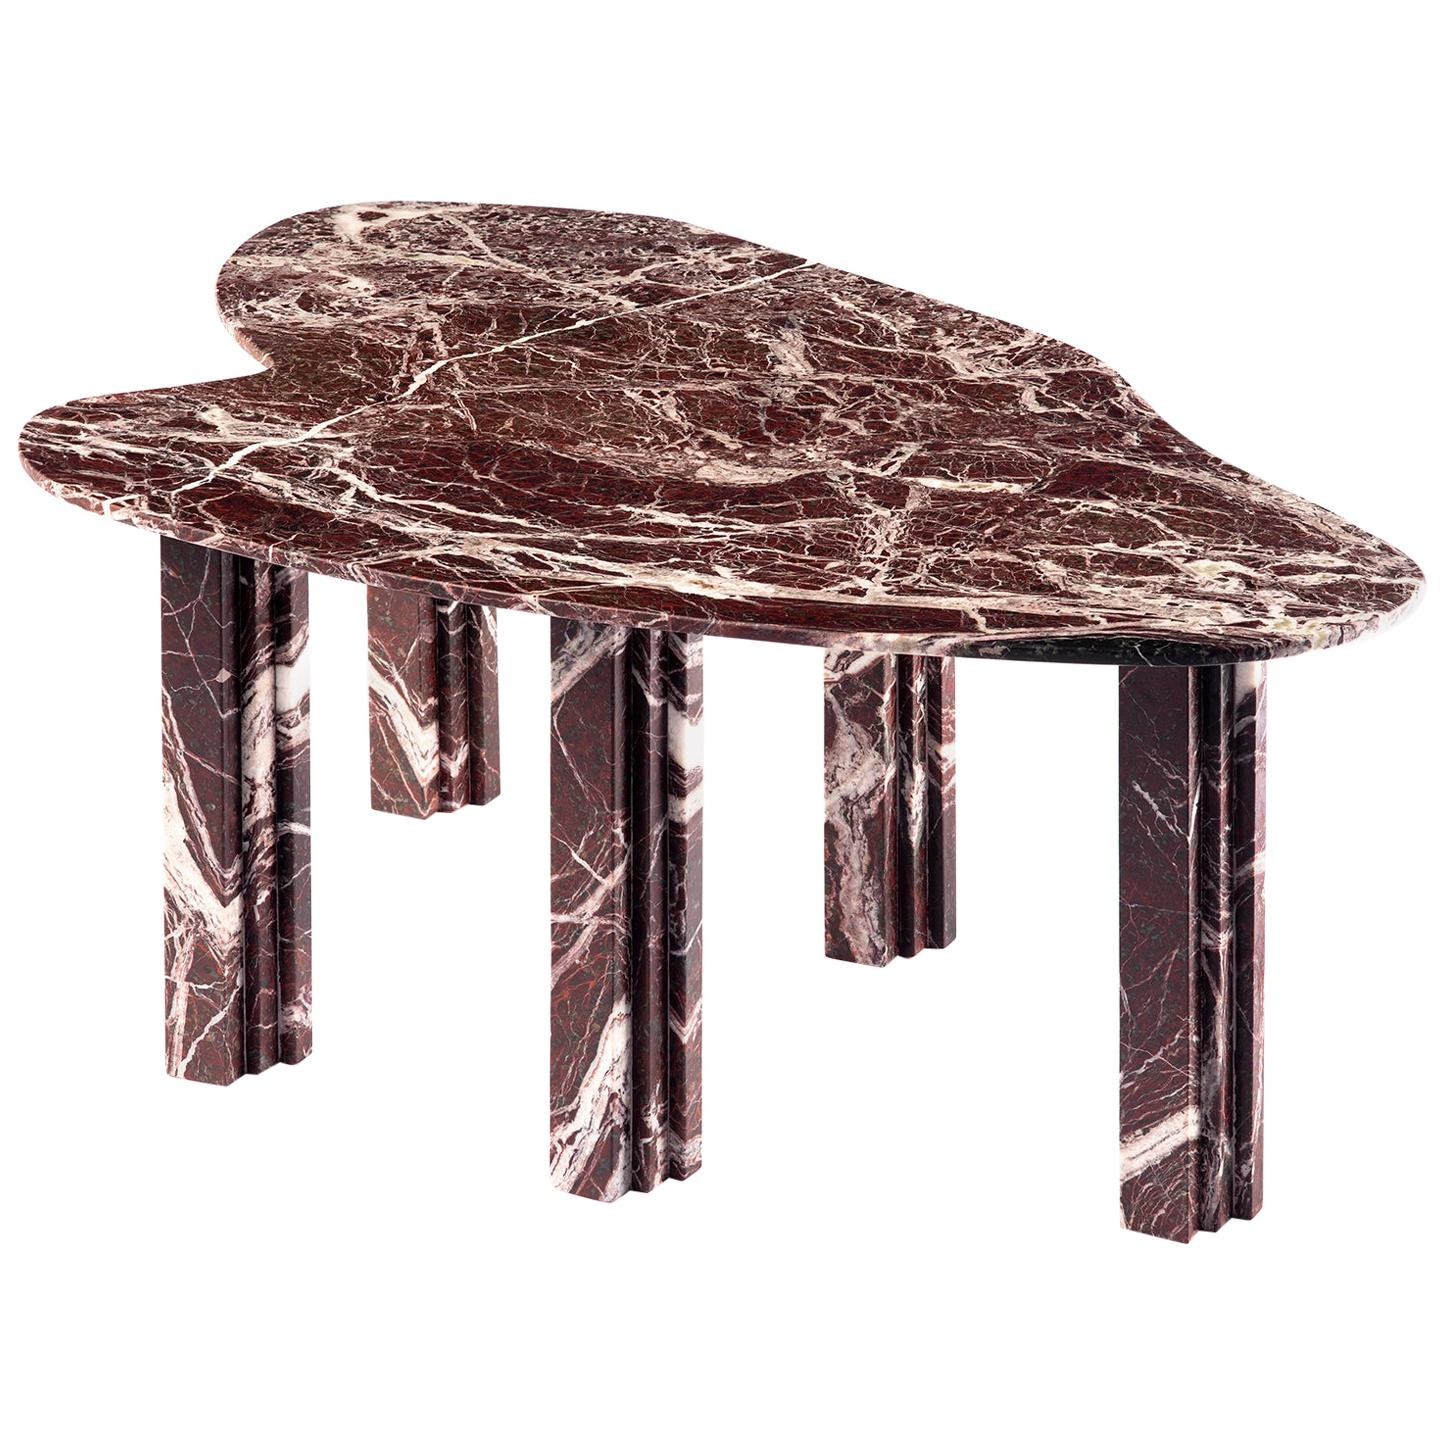 Sculptural Red Marble Coffee Table Signed by Lorenzo Bini